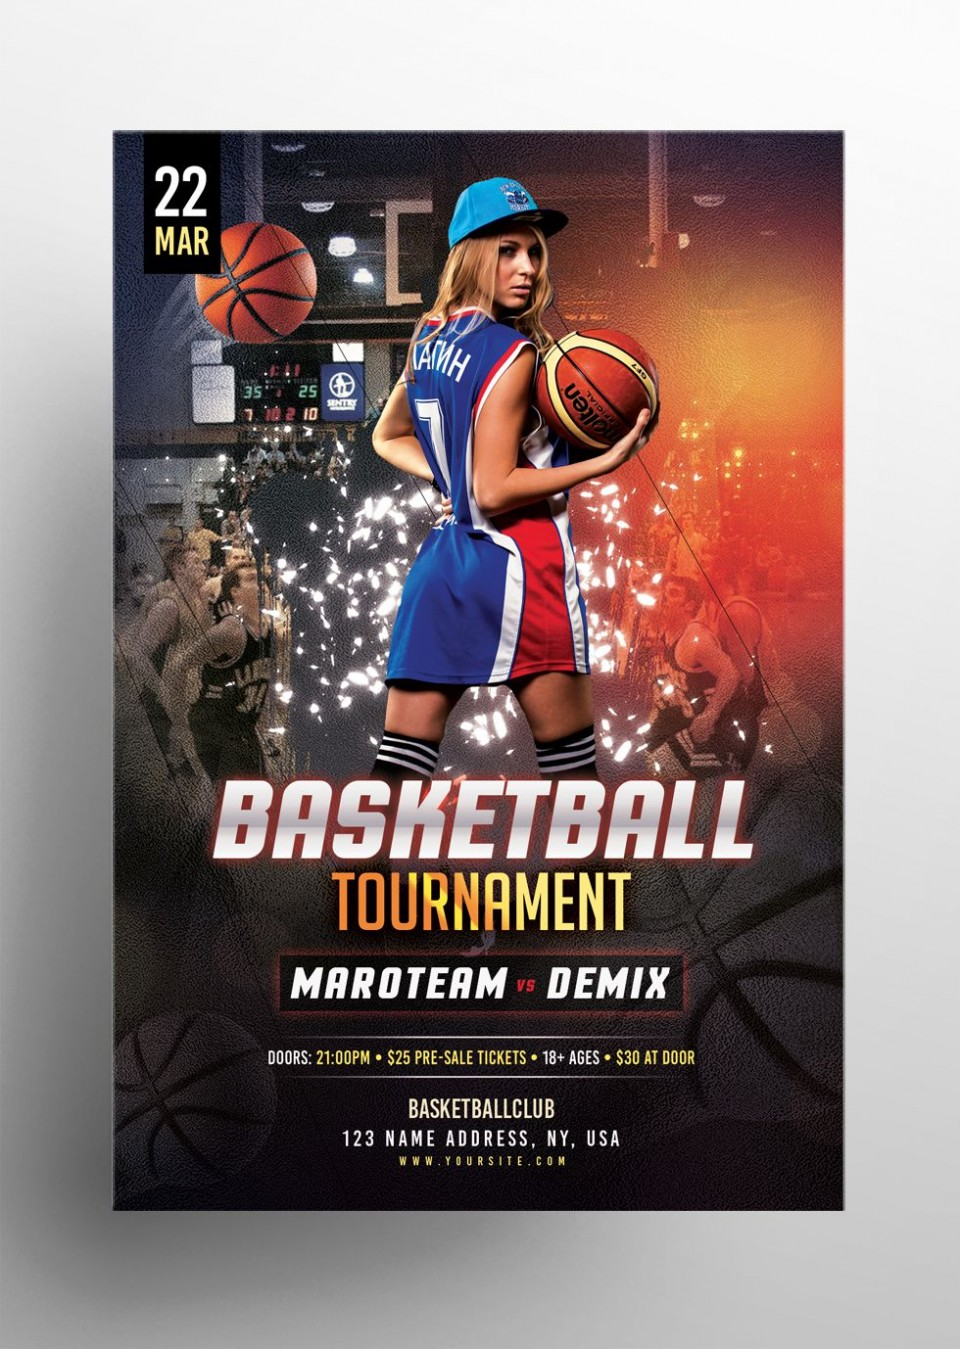 006 Top Basketball Tournament Flyer Template Photo  3 On Free960